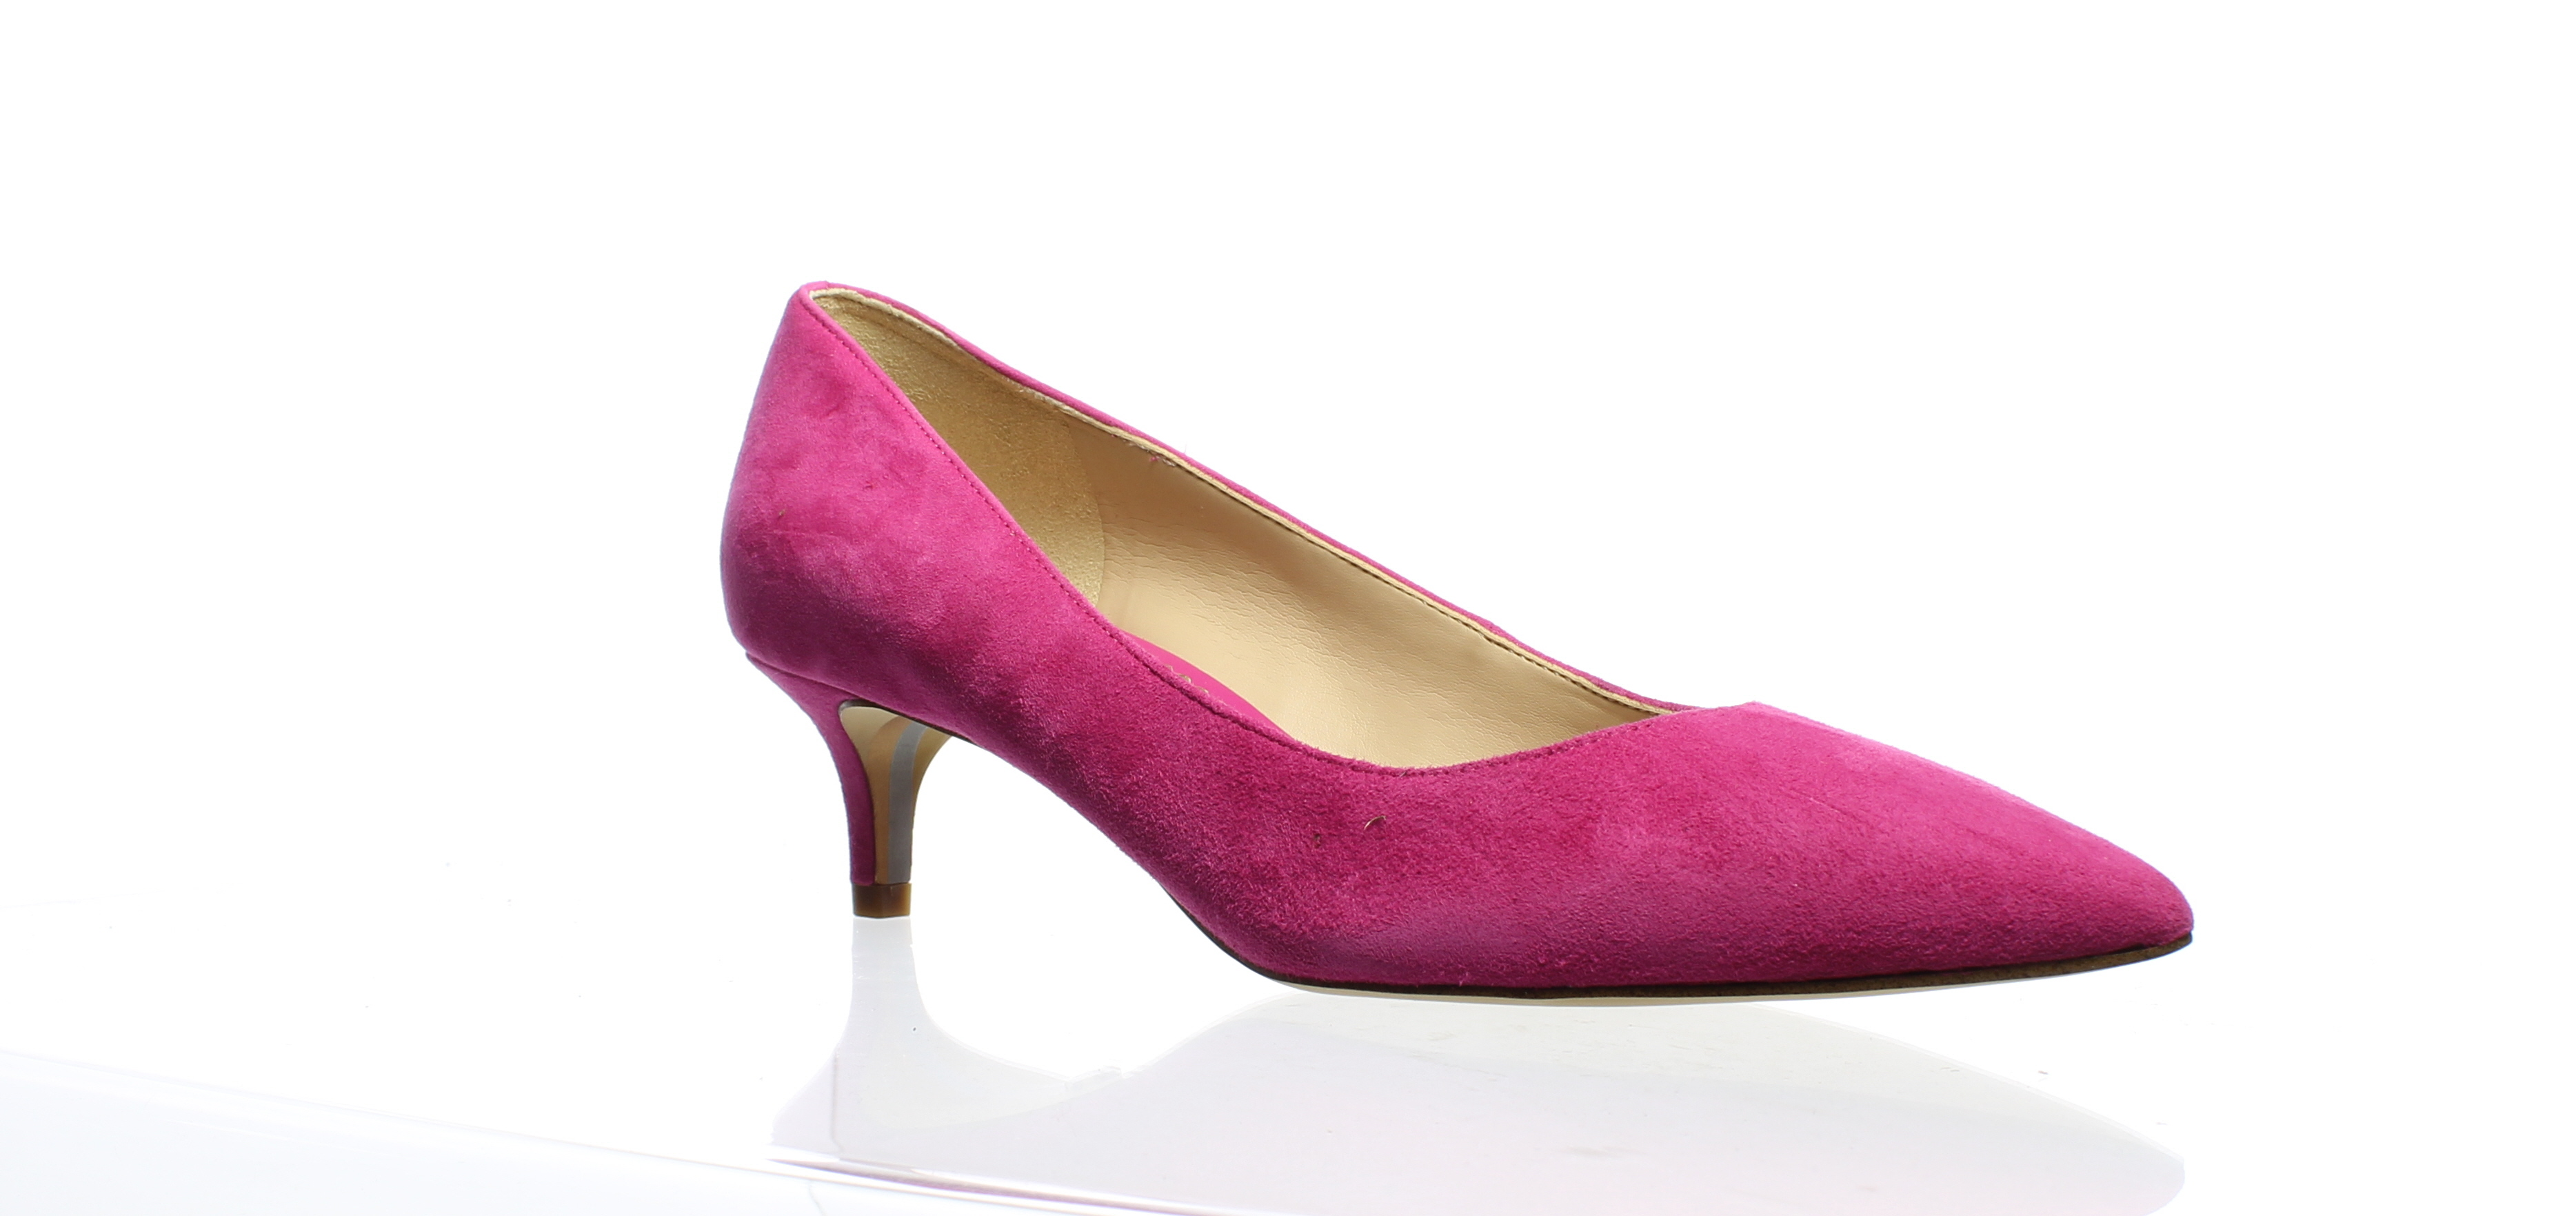 41f31828a67 Details about Sam Edelman Womens Dori Retro Pink Pumps Size 7 (405346)